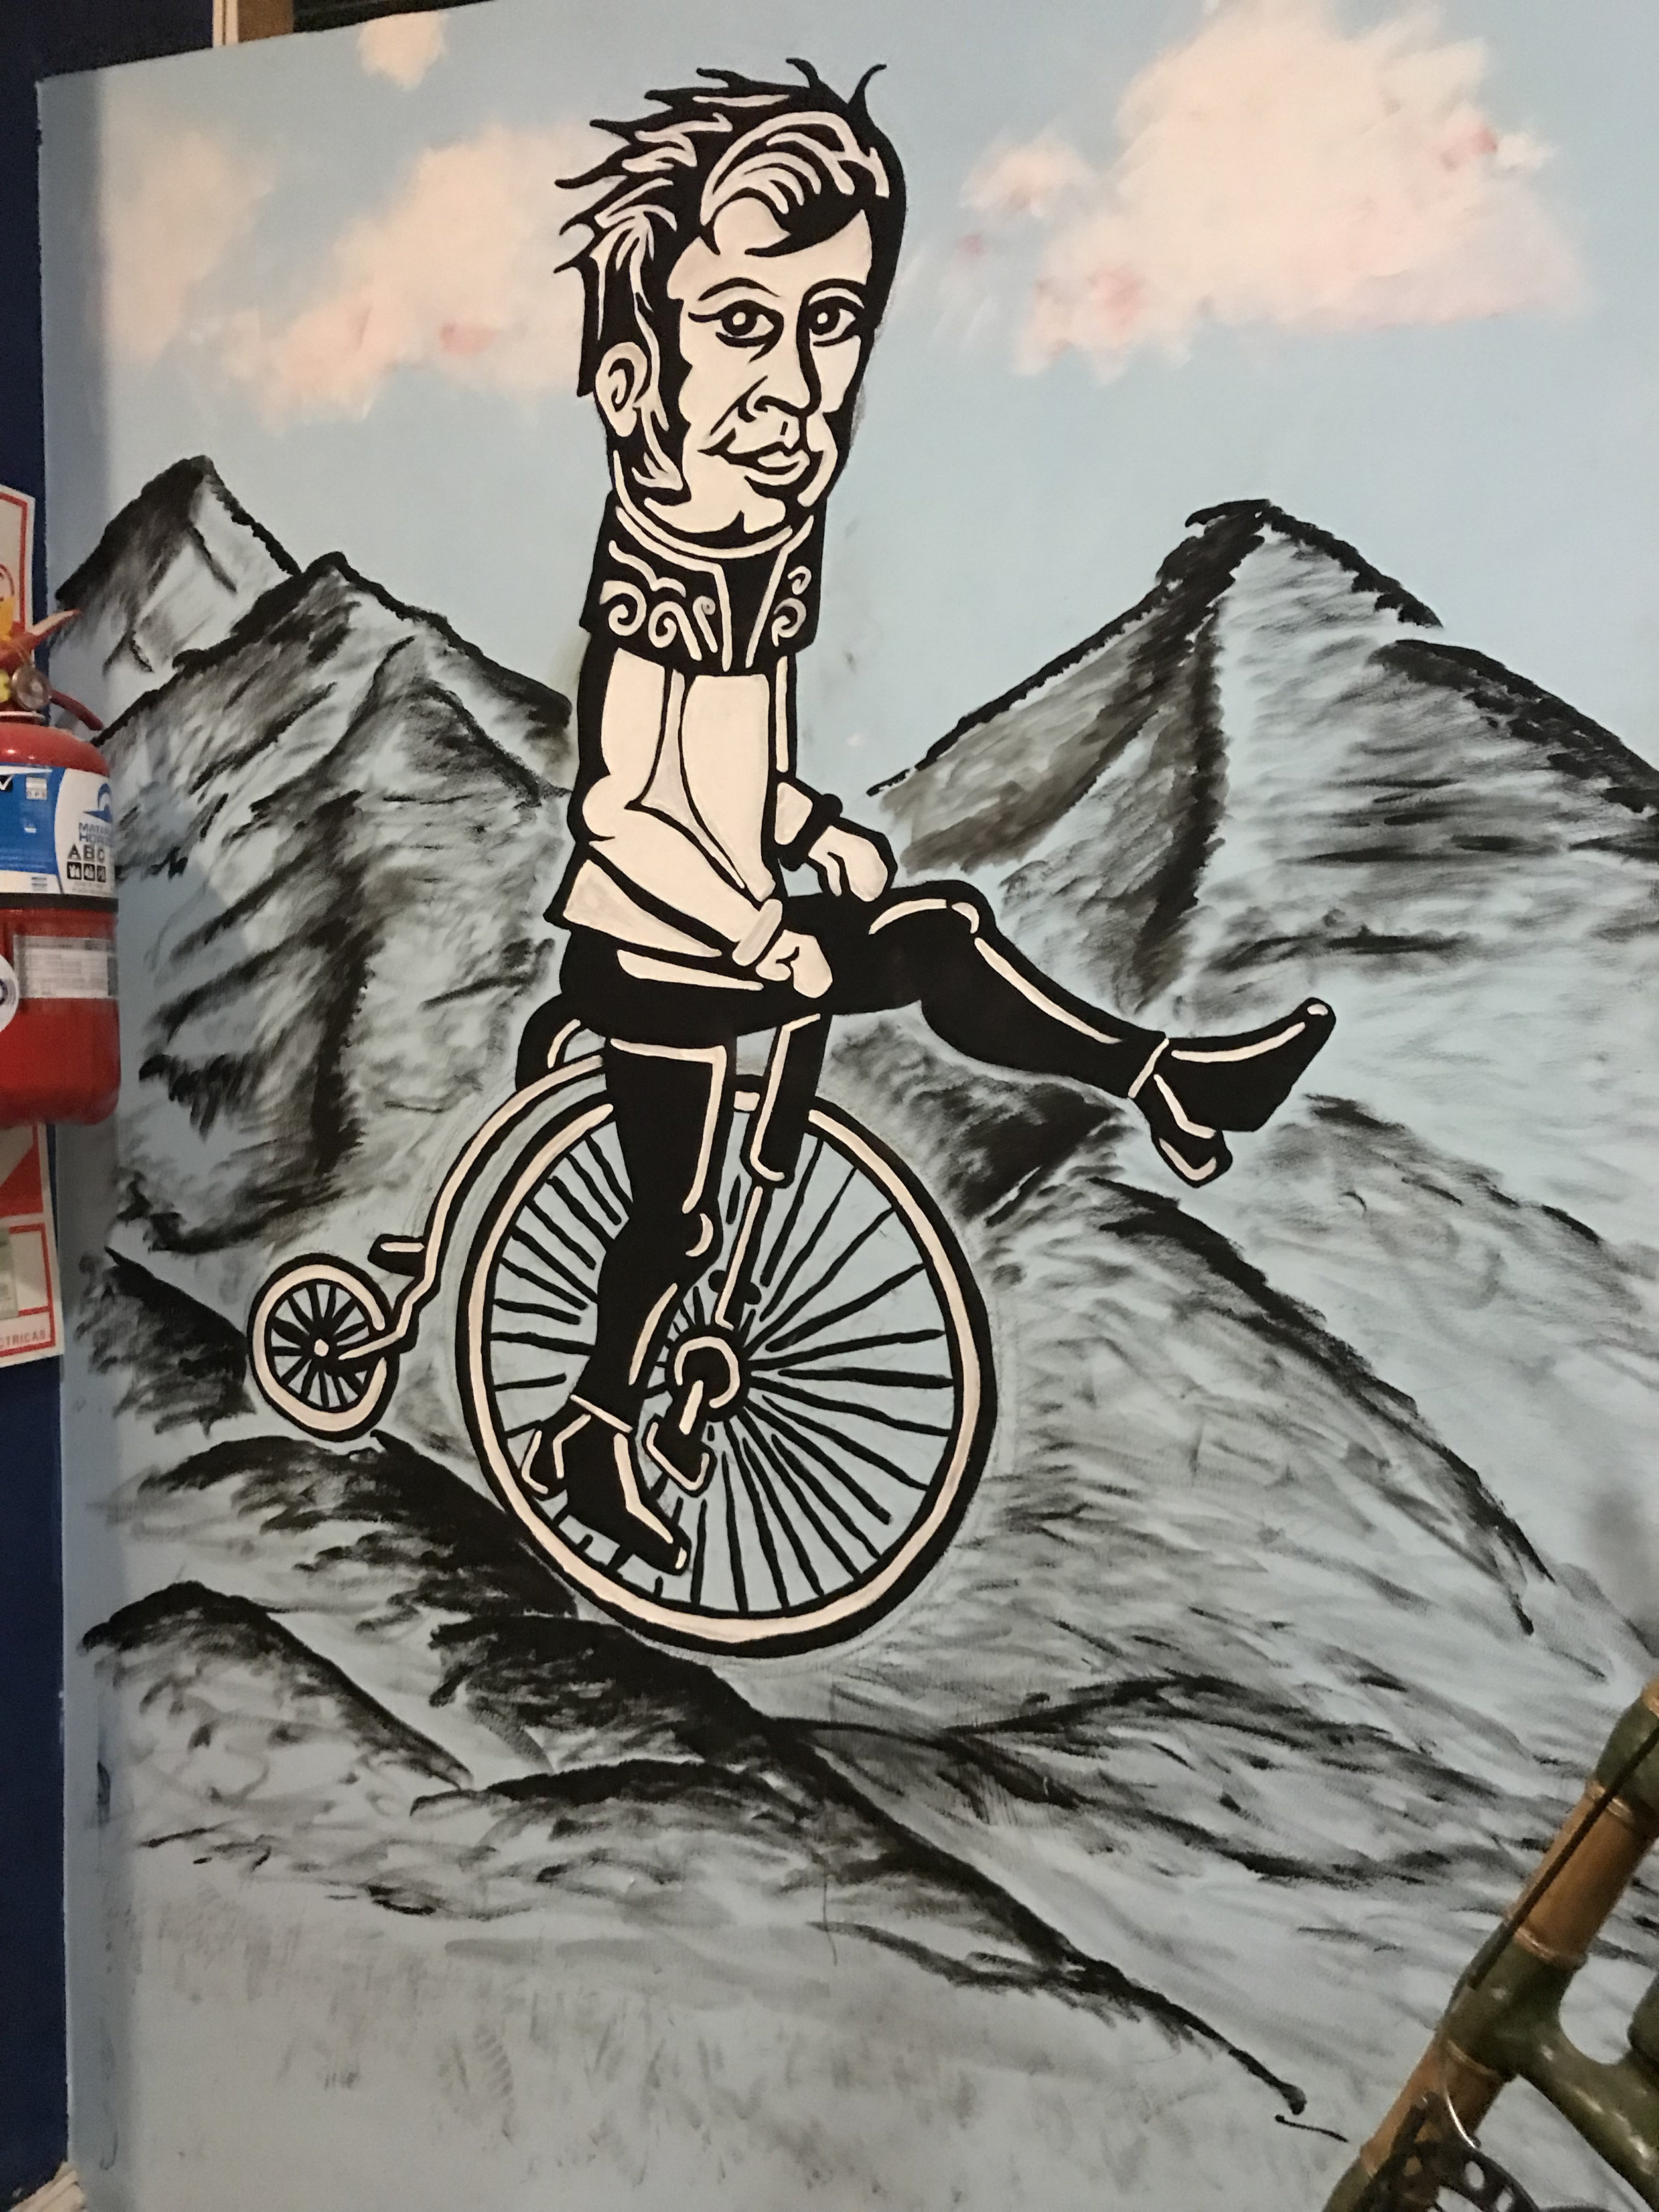 Buenos Aires, Argentina: Acrylic paint on wall inside bike shop